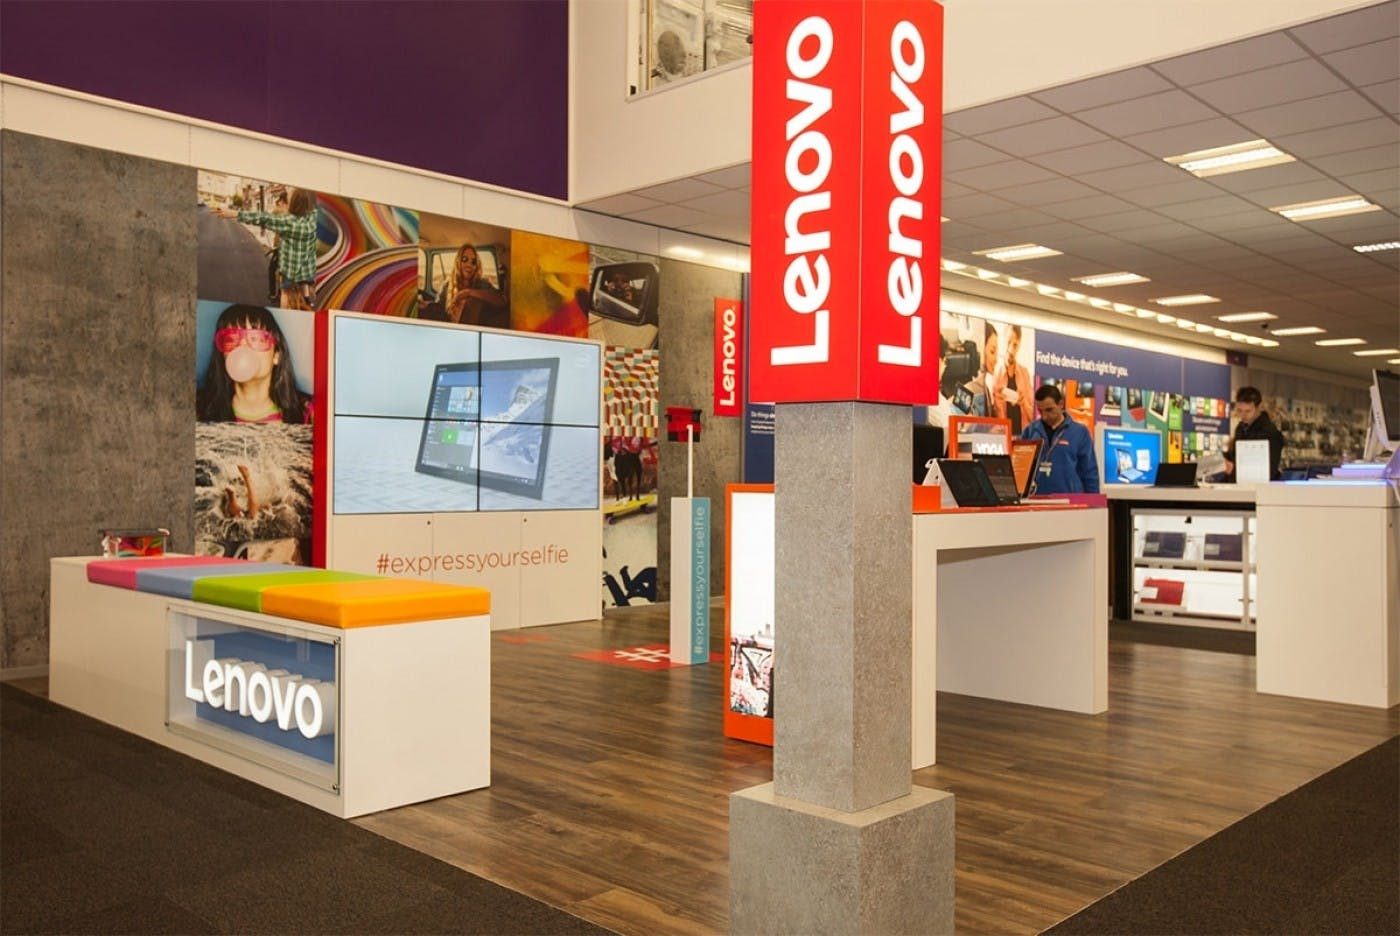 4 Digital Signage Retail Case Studies and Why They Work